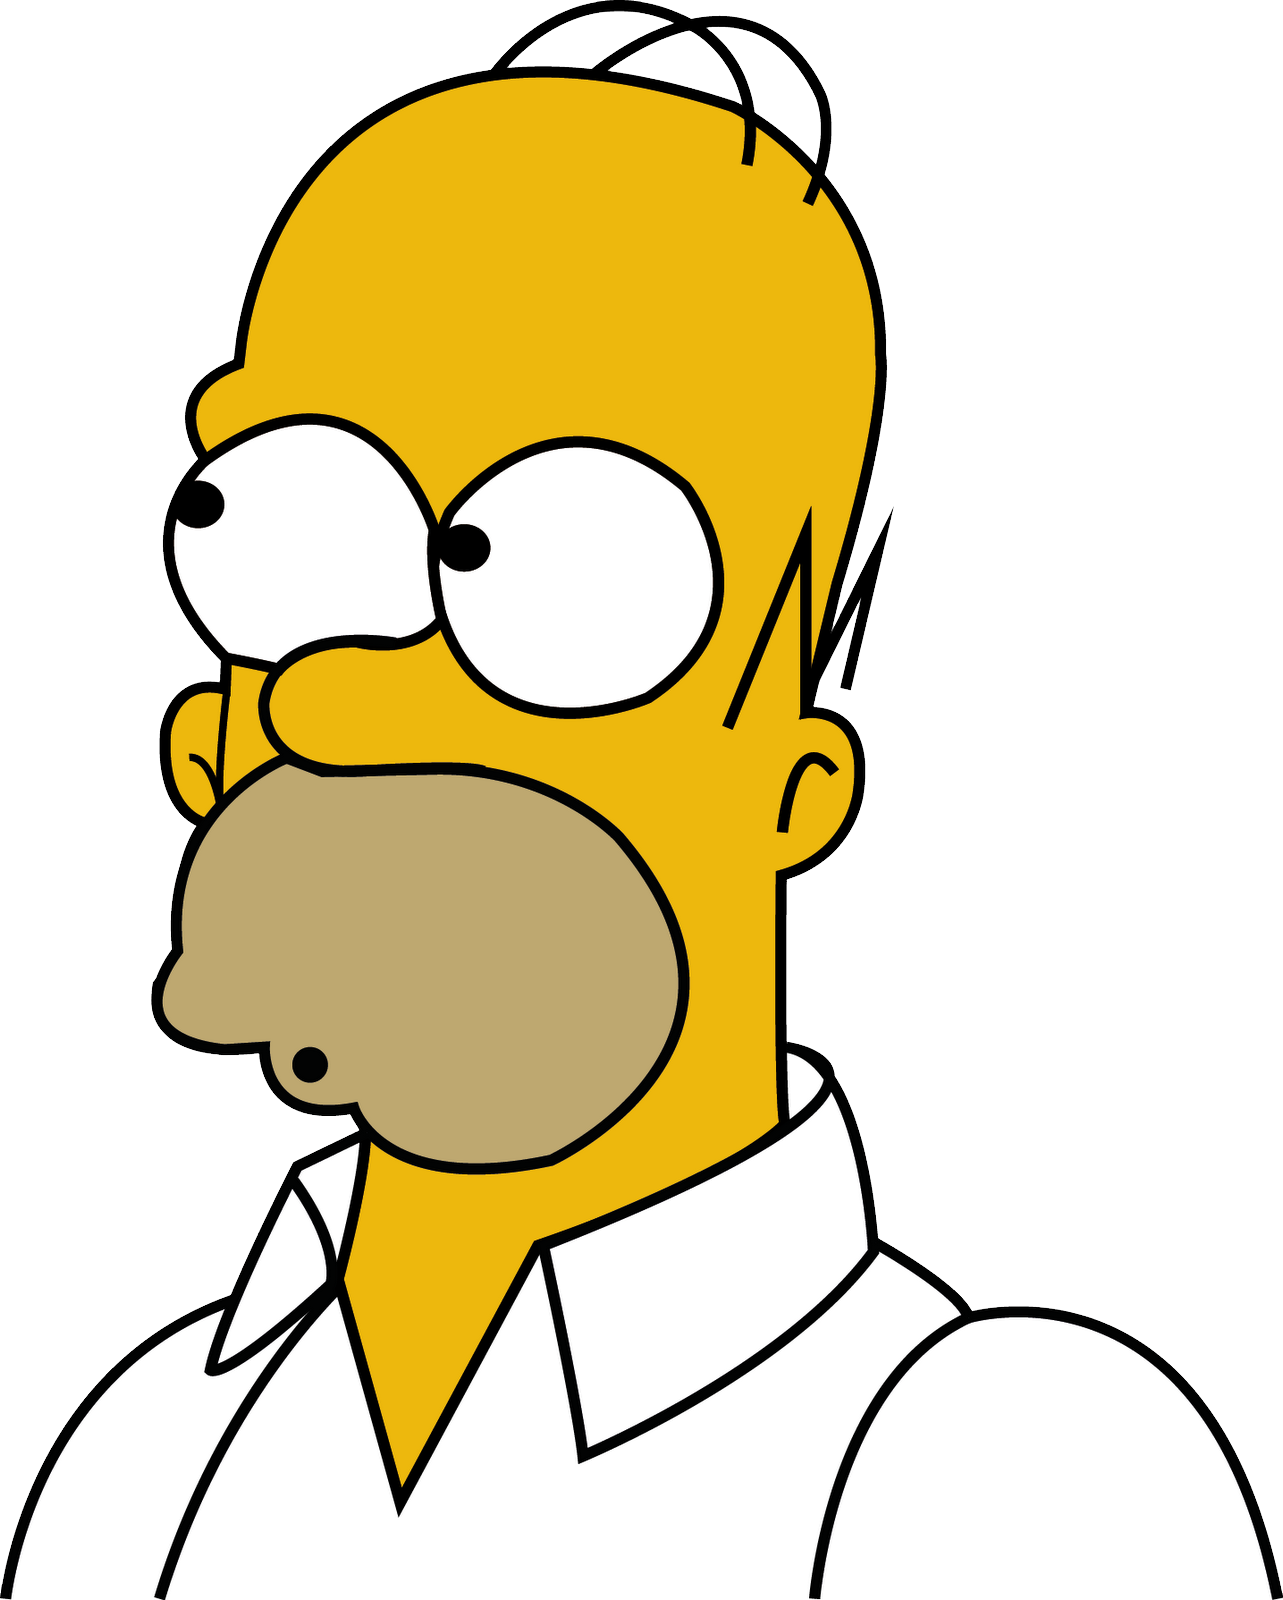 Download this high resolution Simpsons PNG in High Resolution